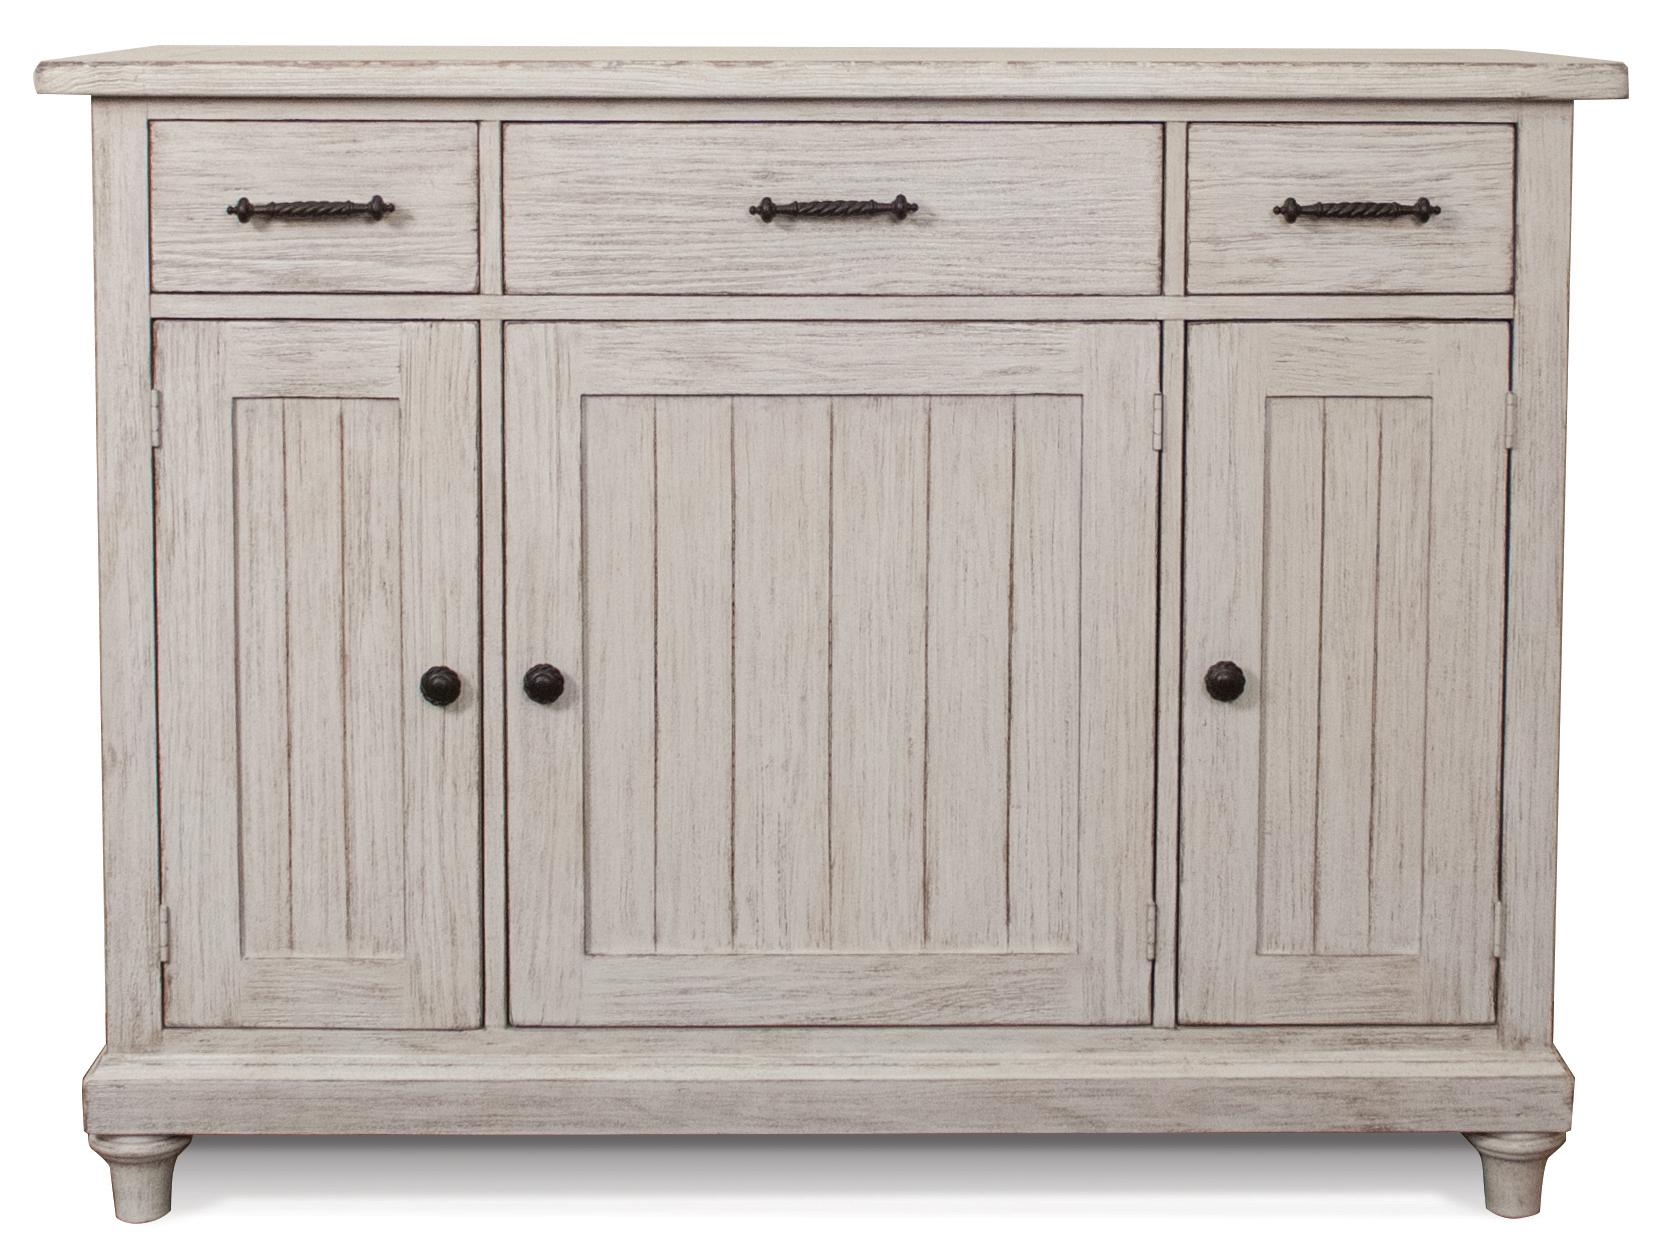 Weathered Server w/ Drawers and Doors